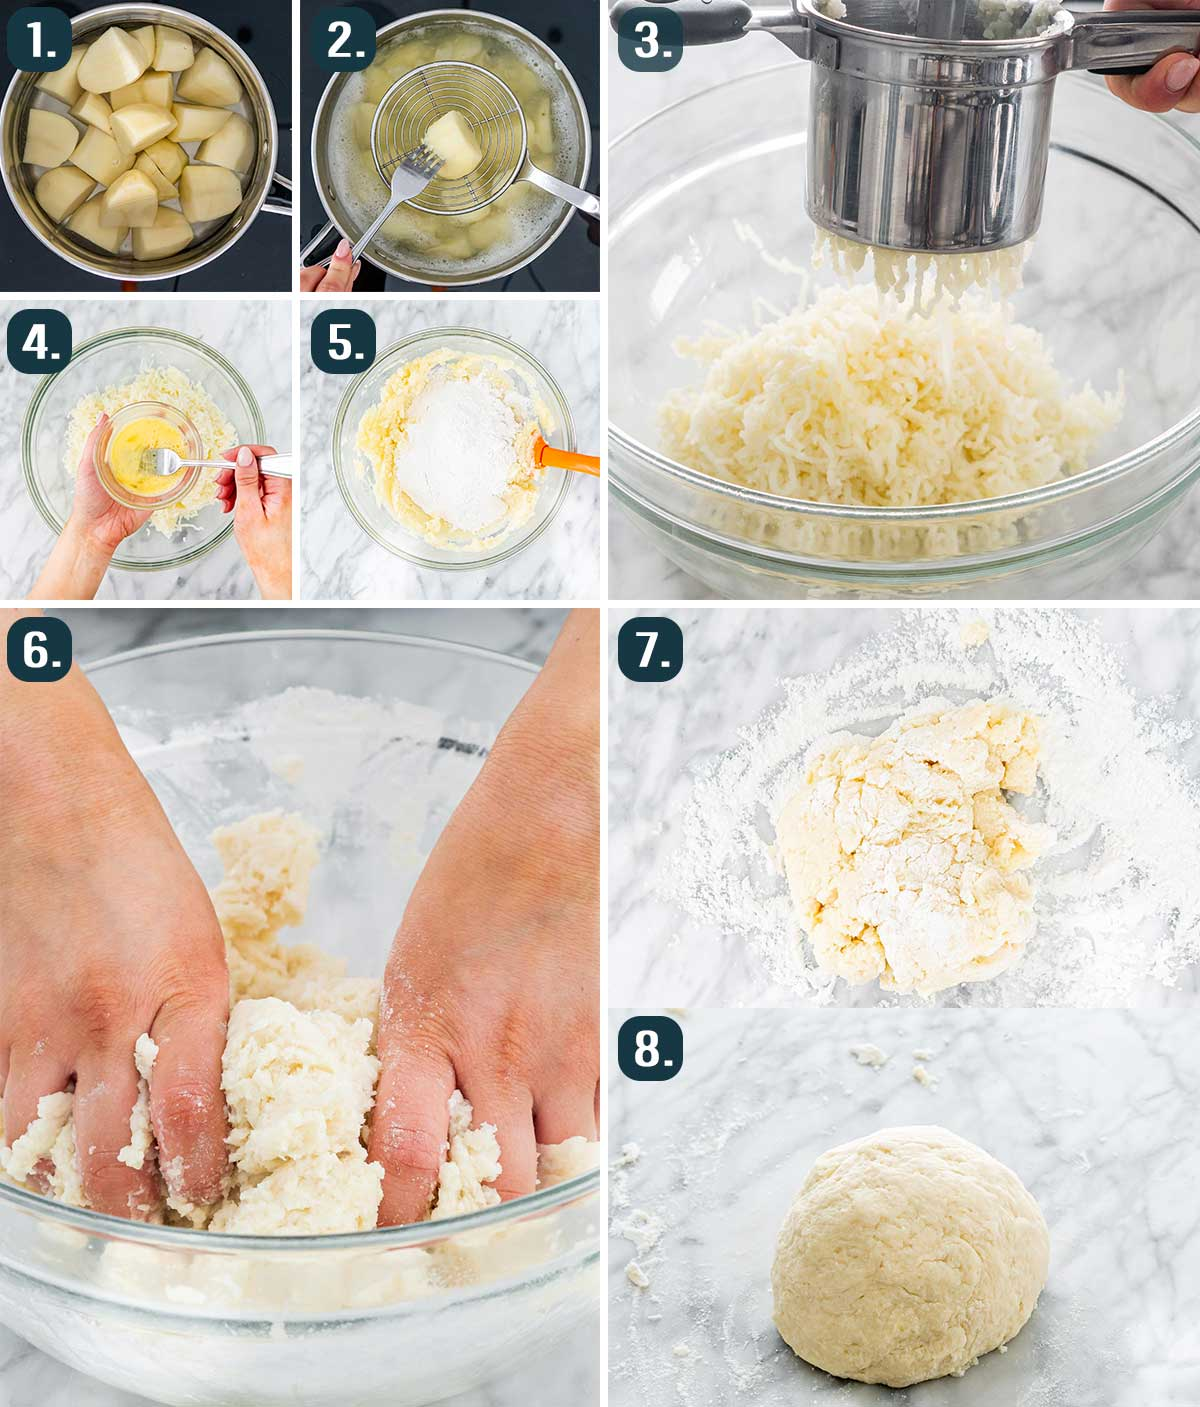 process shots showing how to make dough for potato gnocchi